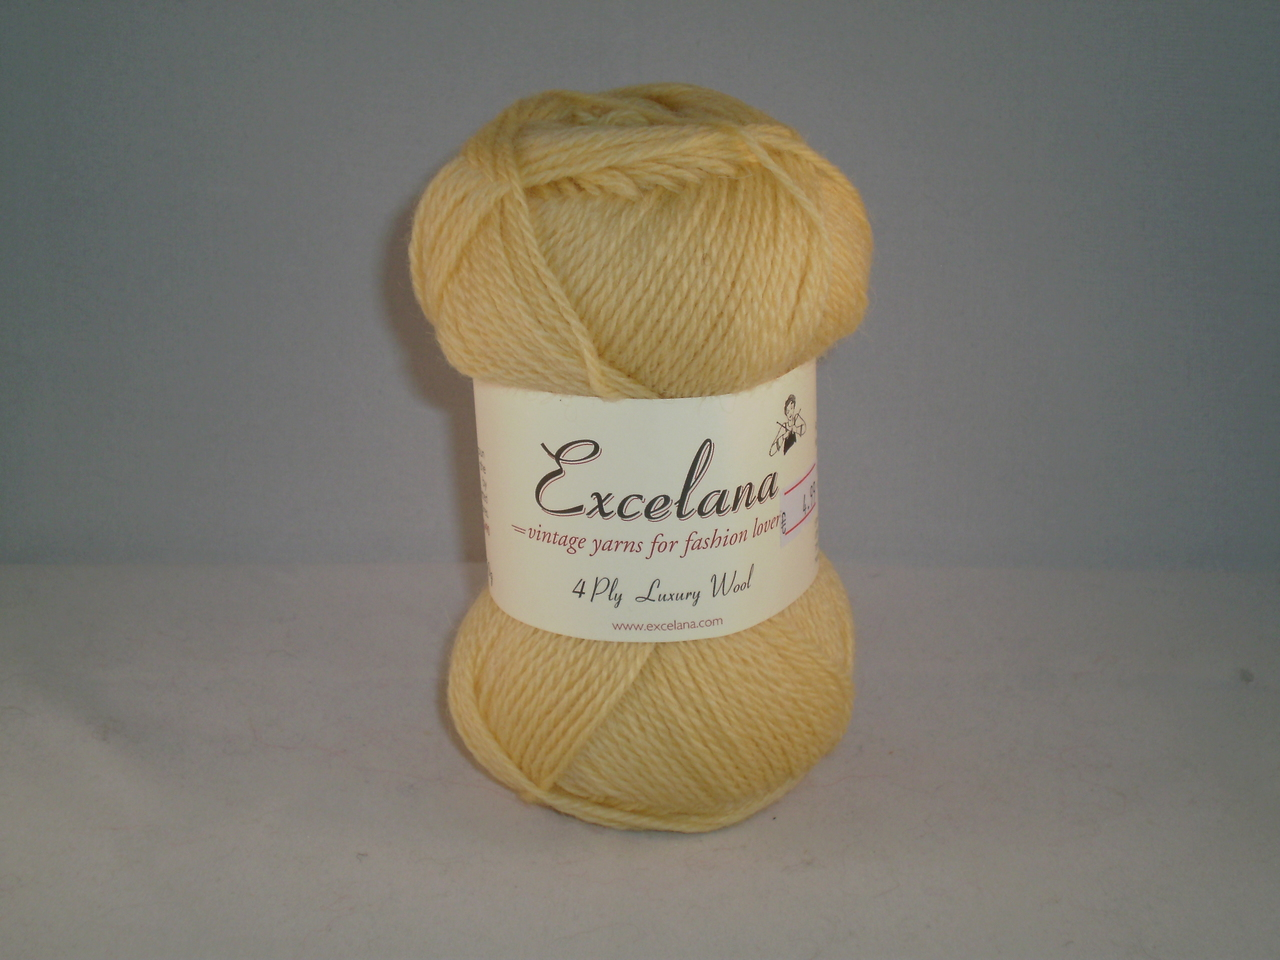 Excelana 4-ply luxury wool in Powdered Egg